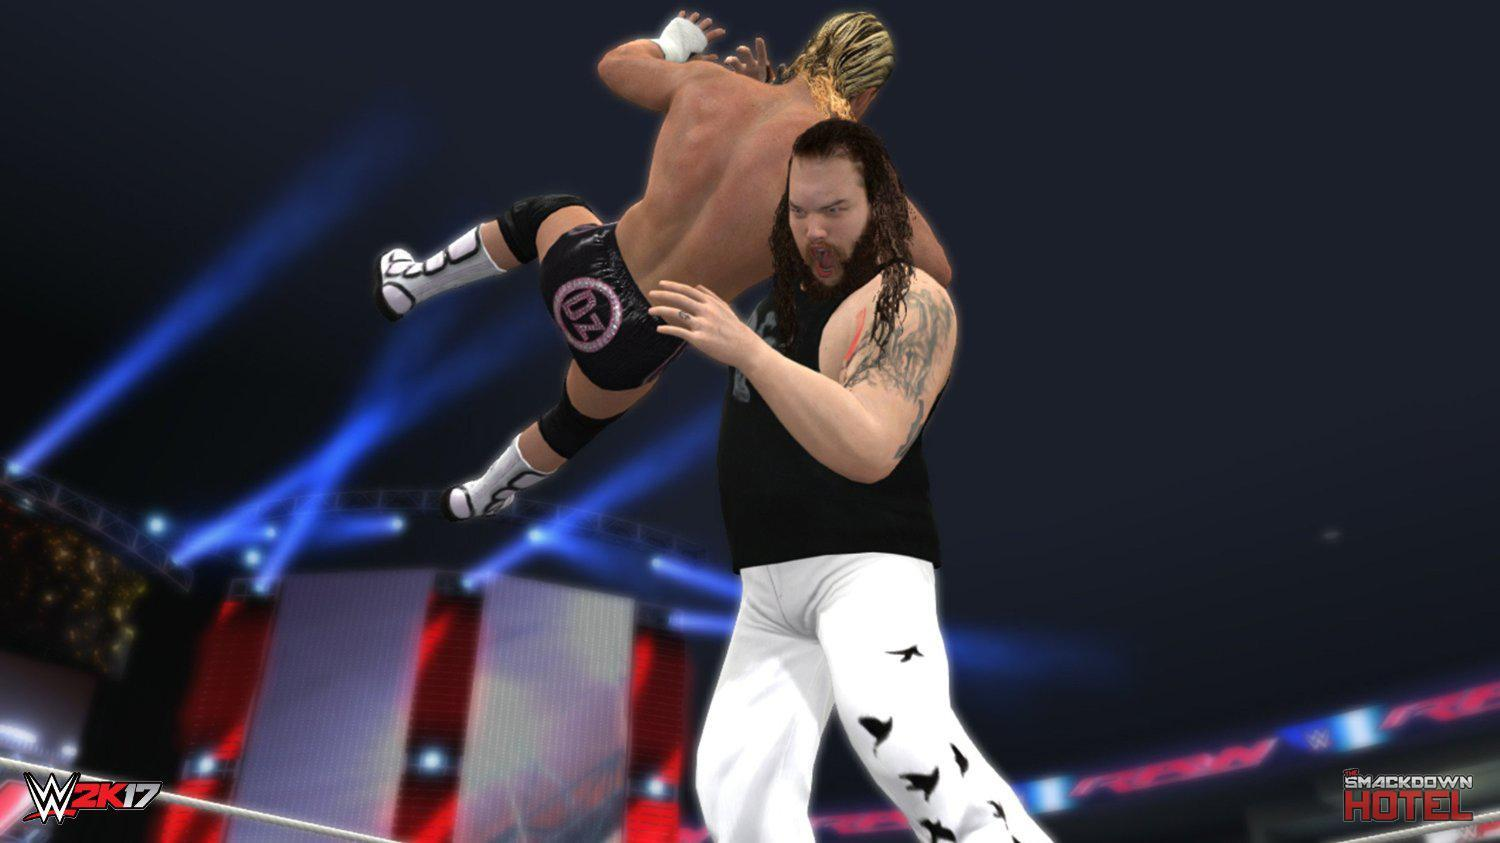 New Wrestling Game For Ps3 : First wwe k old gen screenshot released xbox ps